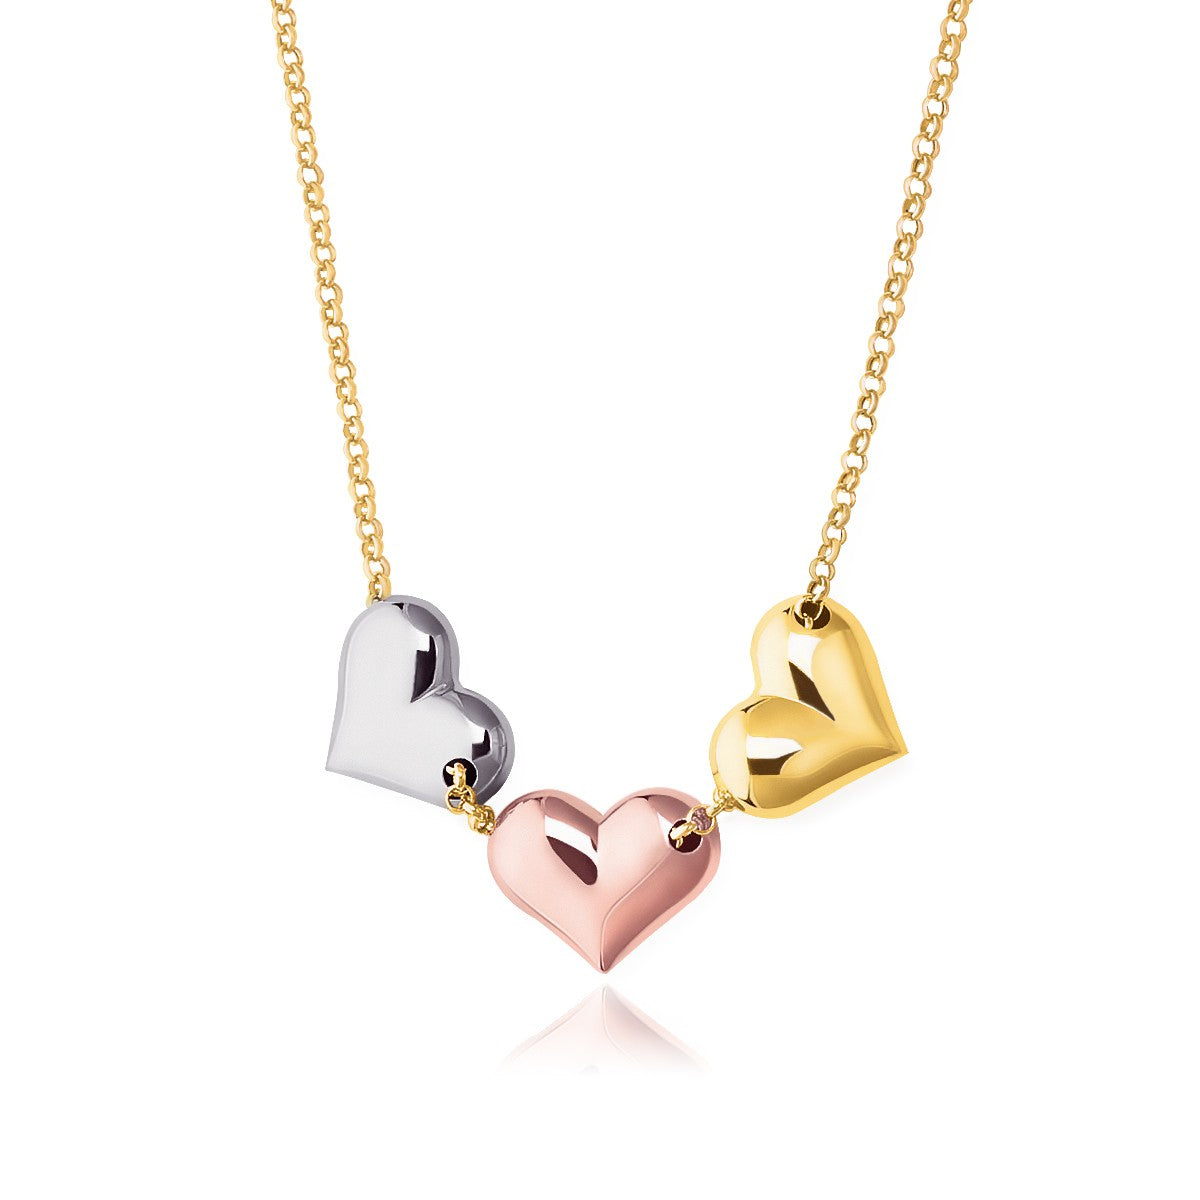 Unique Hollywood Style 14K Tri-Color Gold Triple Heart Necklace